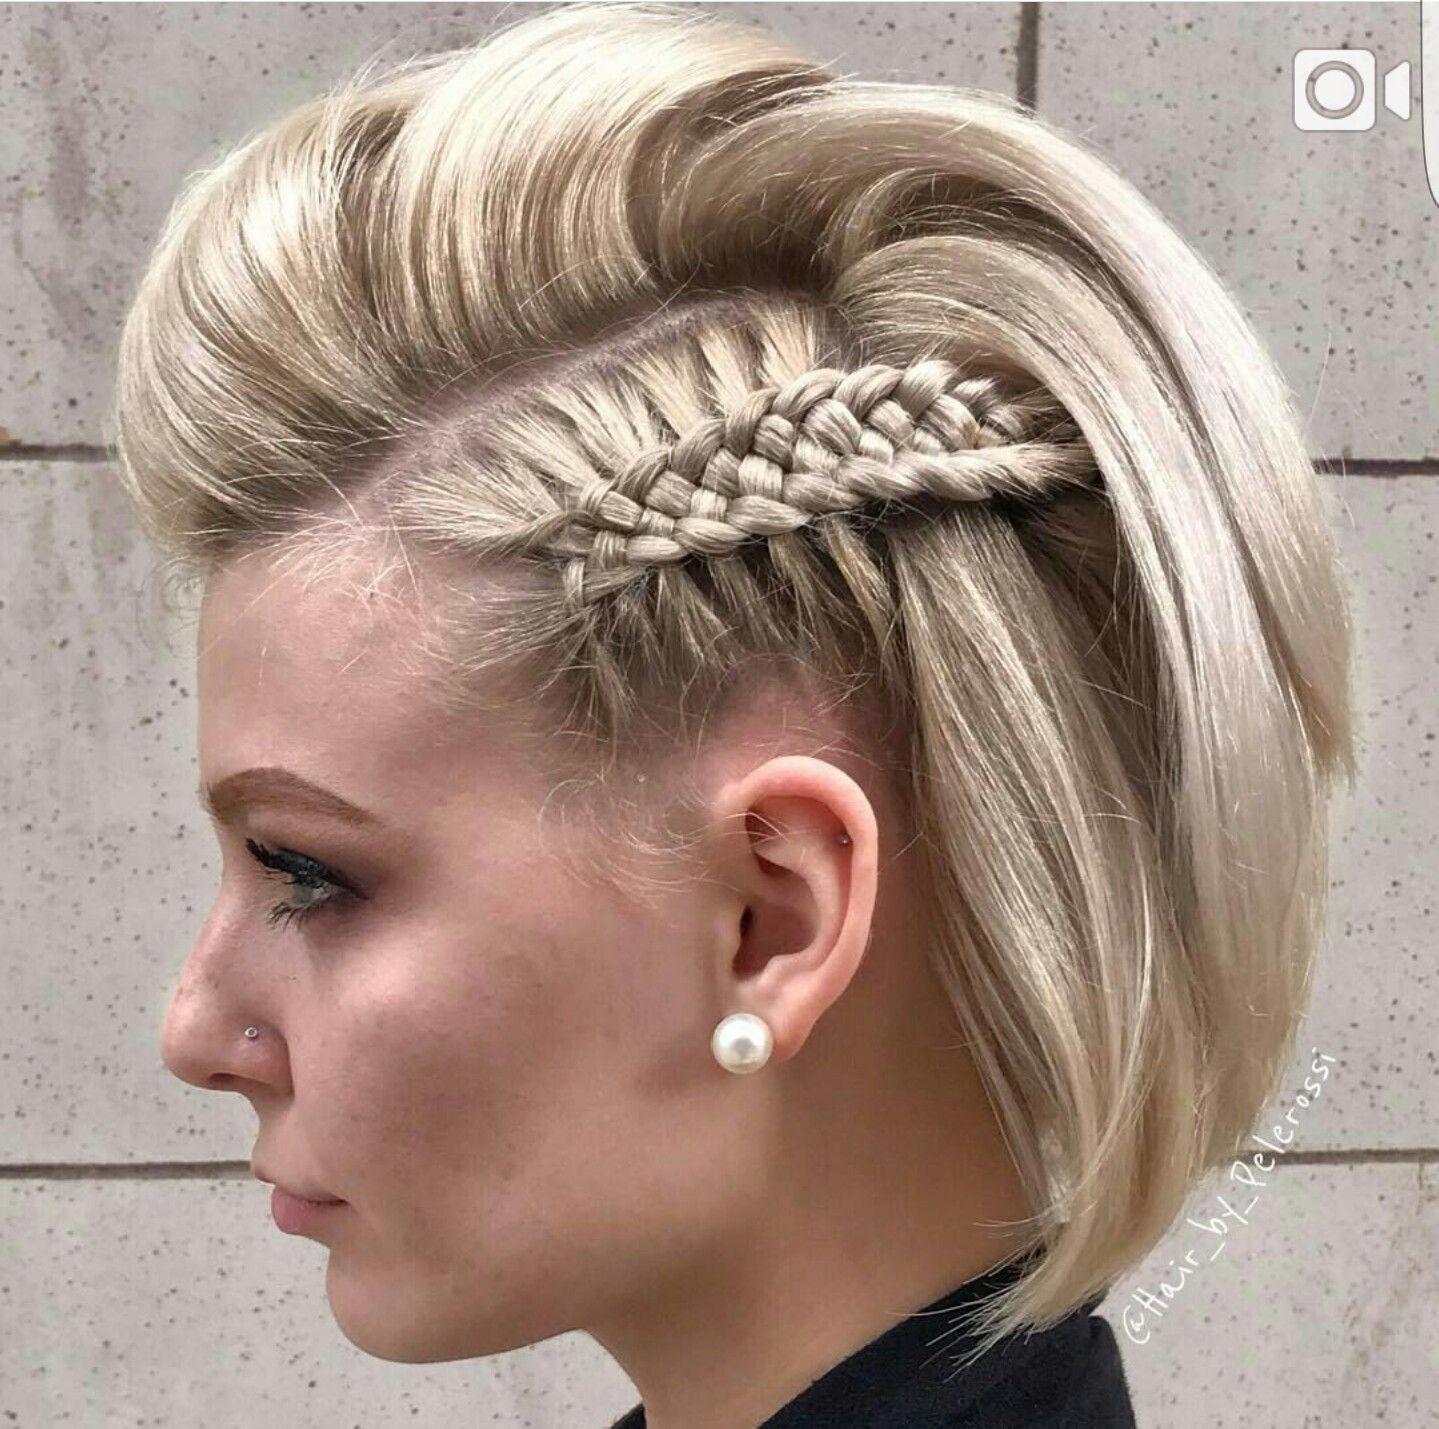 Pin by mina vaughan on hair styling pinterest hair style hair